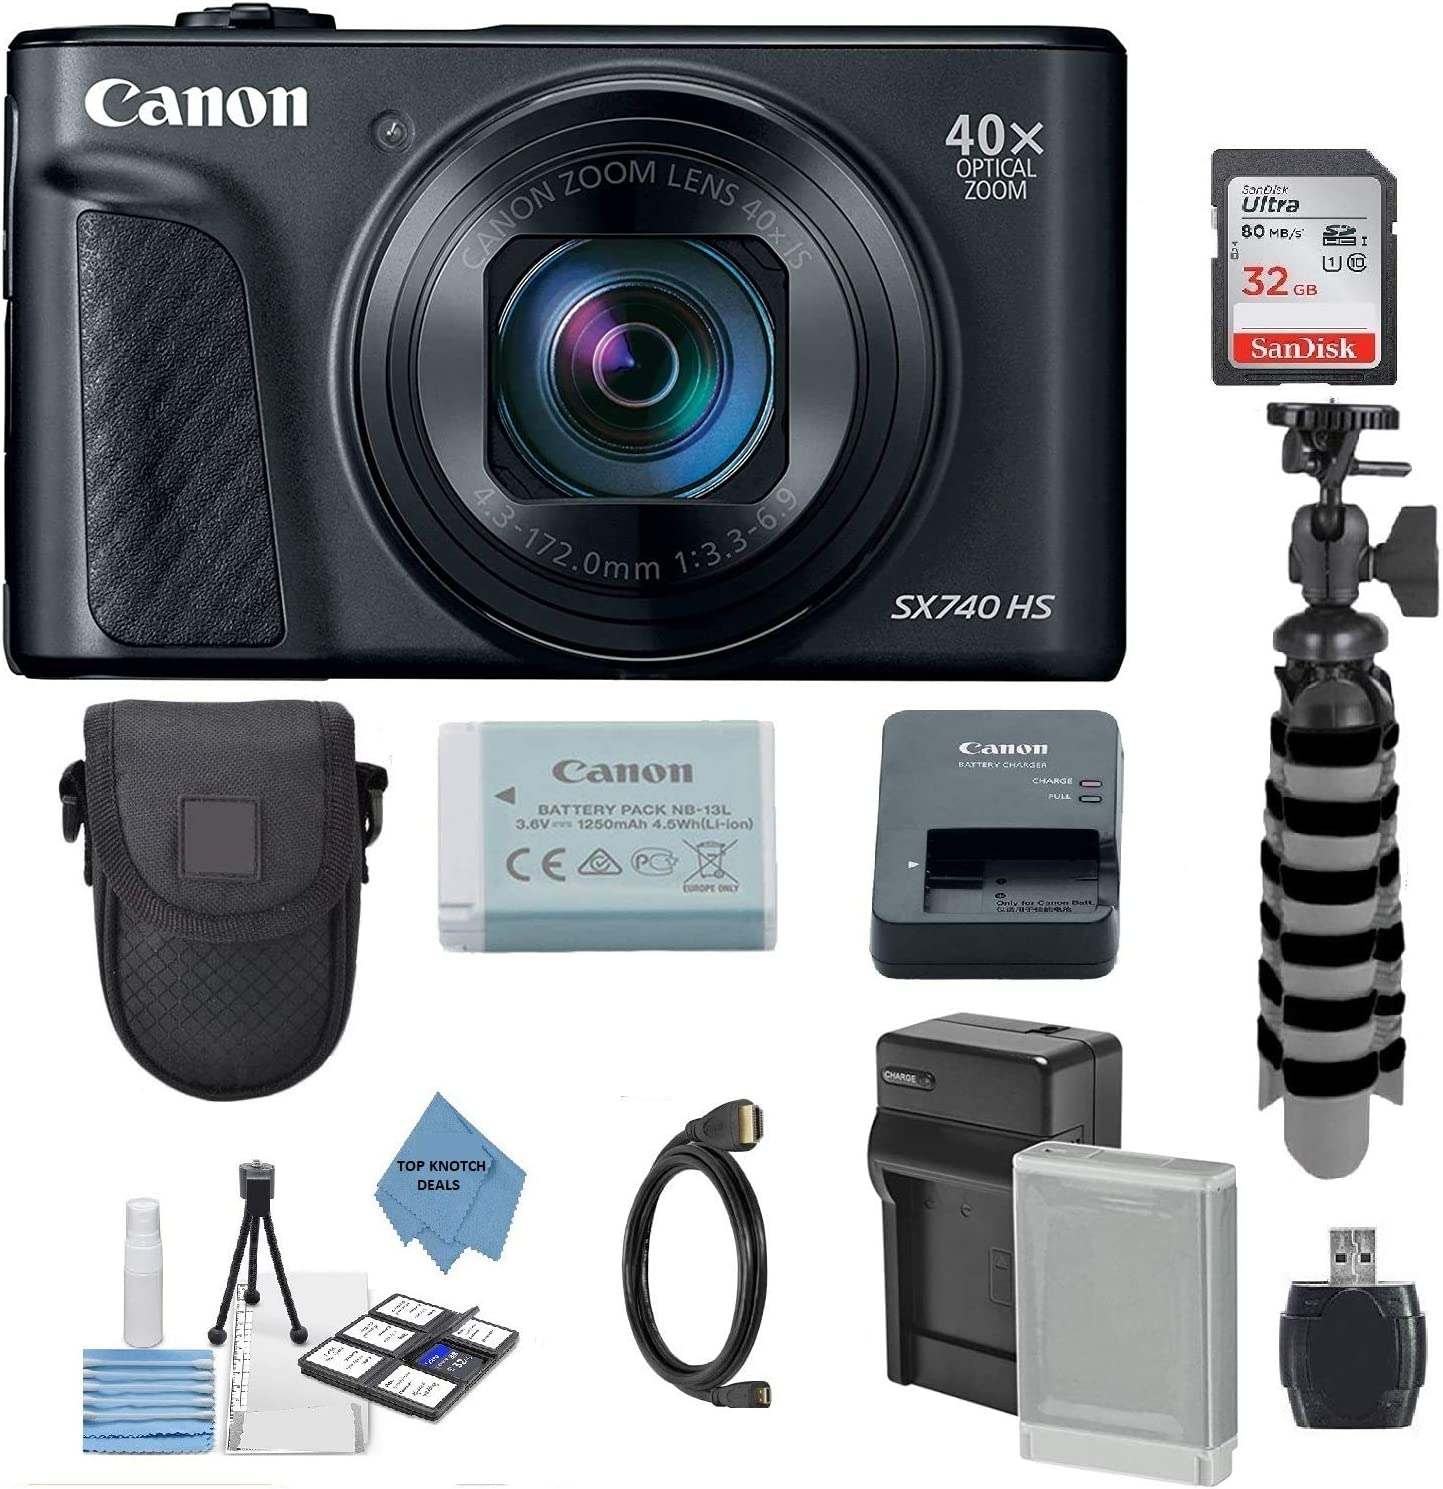 Canon PowerShot SX740 HS Wi-Fi 4K Digital Camera (Black) with 32GB Card + Battery & Charger + Case + Tripod + TopKnotch Cloth Kit